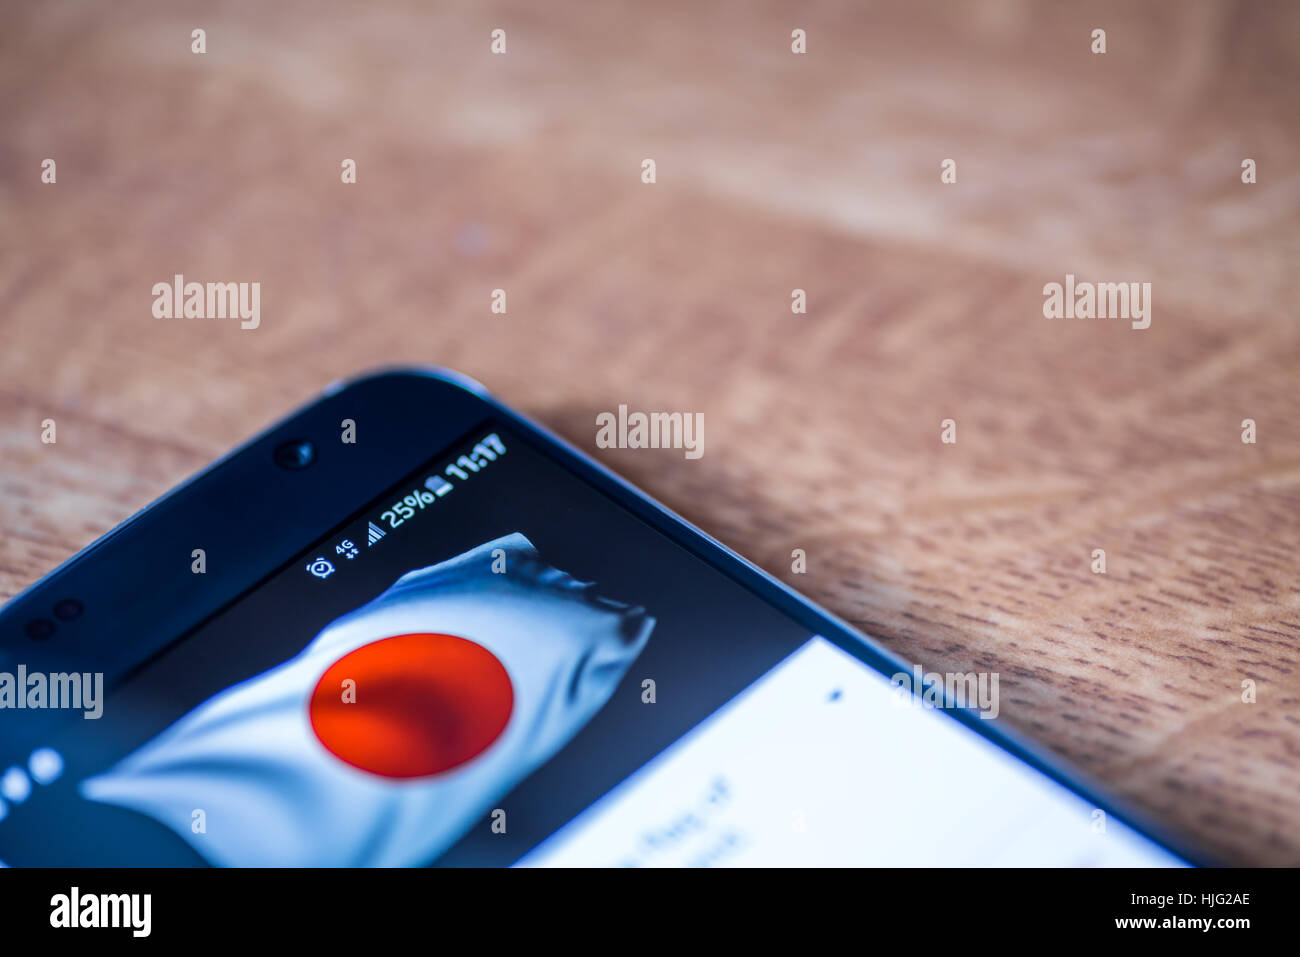 Smartphone on wooden background with 4G network sign 25 per cent charge and Japan flag on the screen. Stock Photo